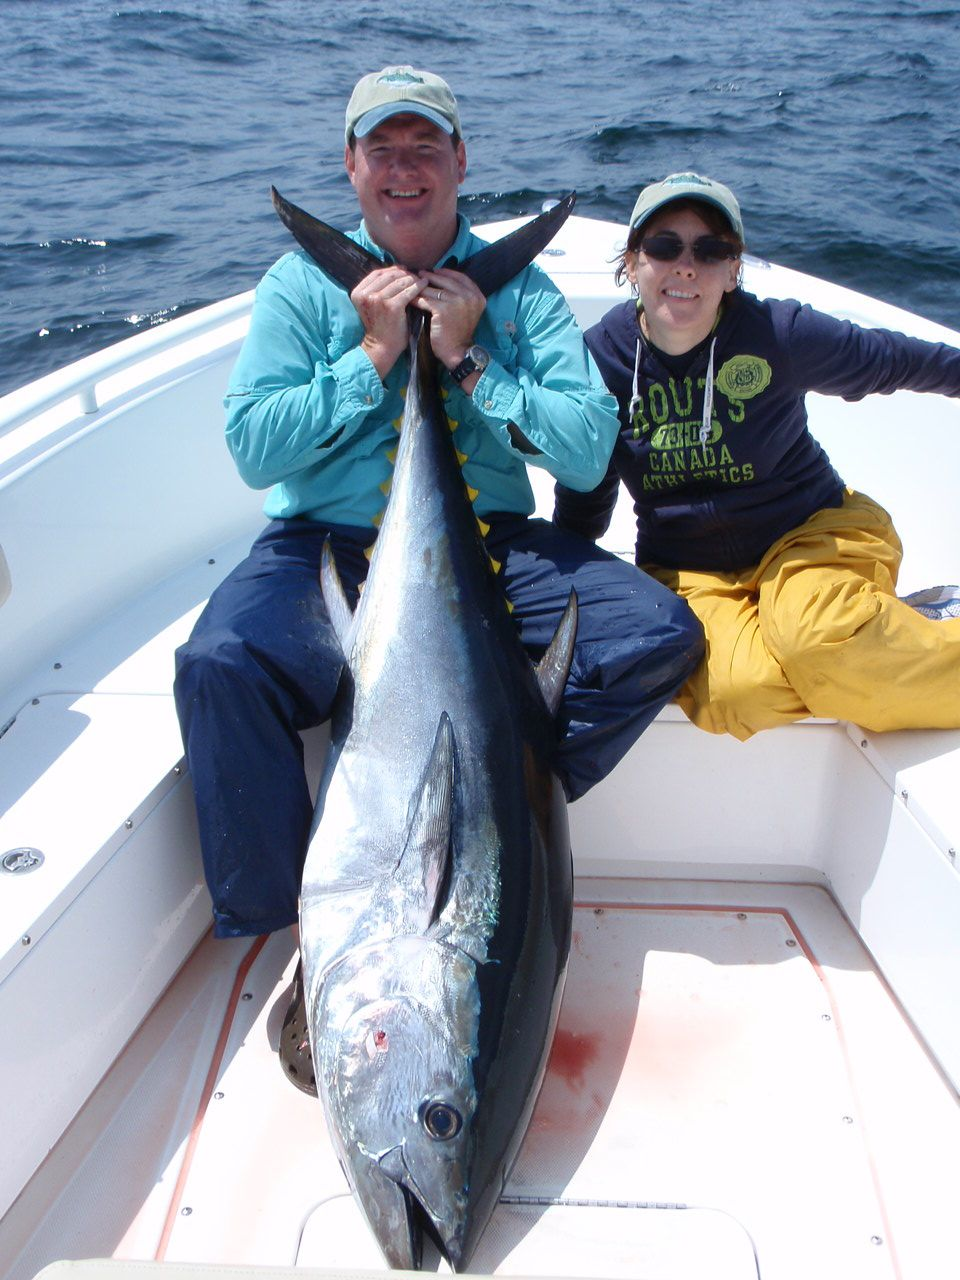 Image of a large bluefin tuna caught on spinning gear off Stellwagen bank